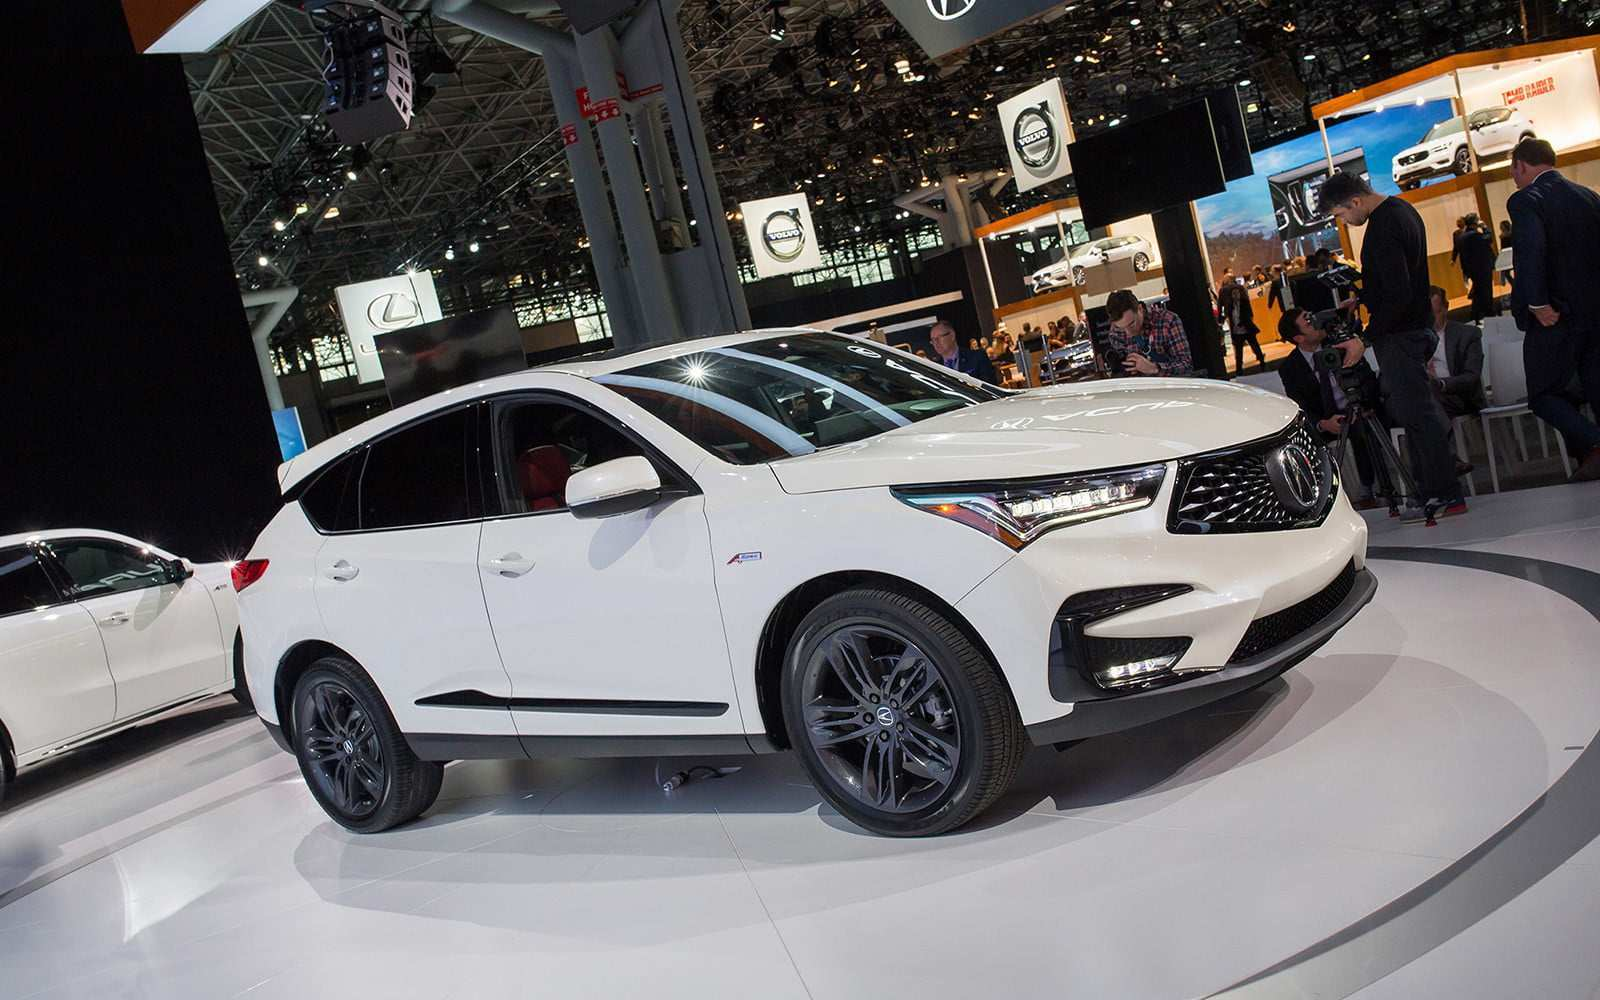 66 New The Acura Zdx 2019 Price First Drive History by The Acura Zdx 2019 Price First Drive